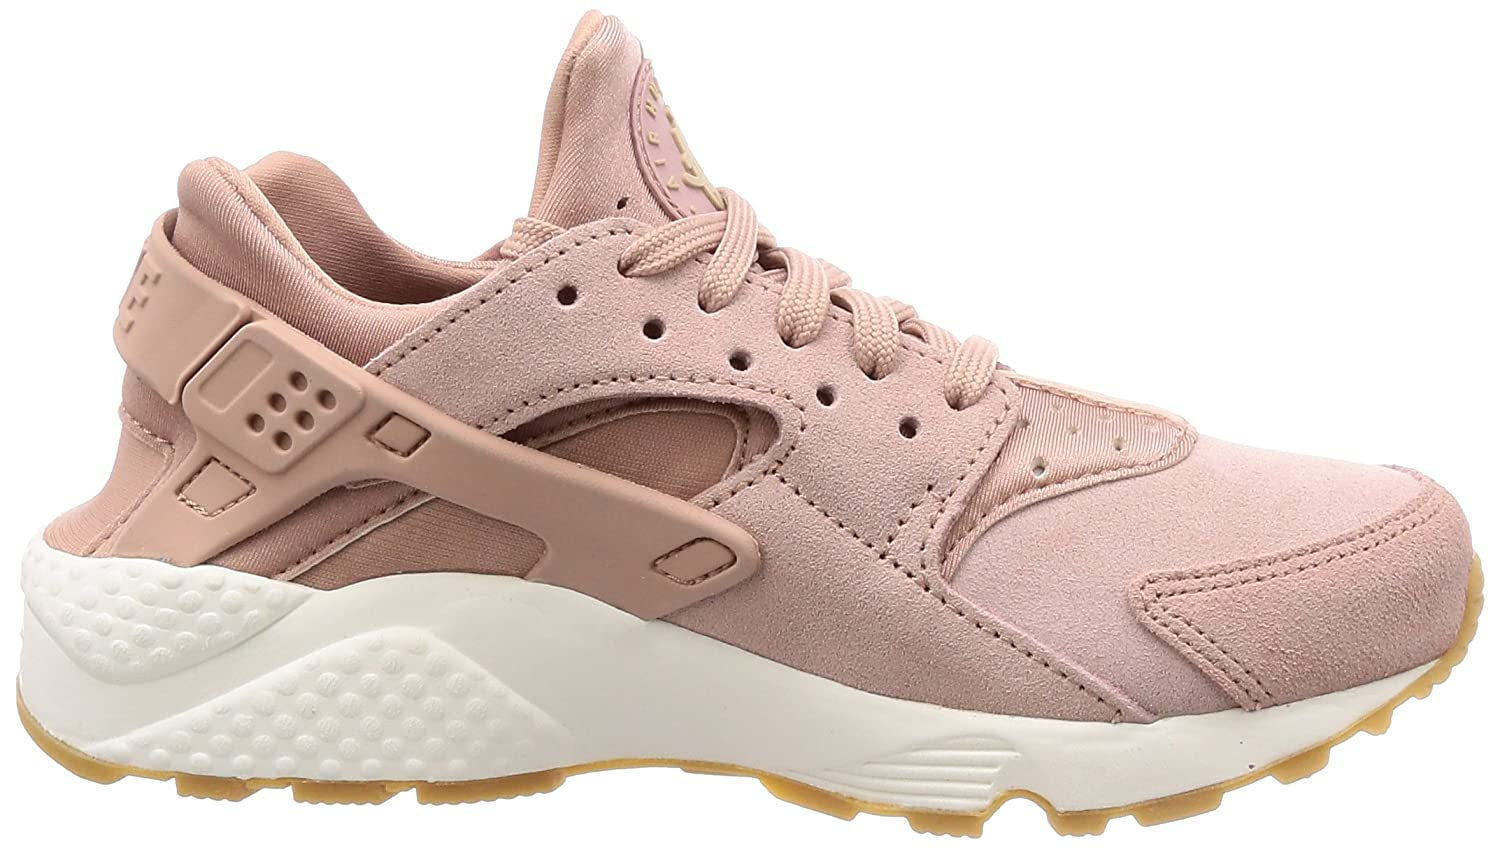 Nike Damen Wmns Air Huarache Run SD Traillaufschuhe, Rosa (Particle Pink/Mushroom/Sail 600), 42,5 EU